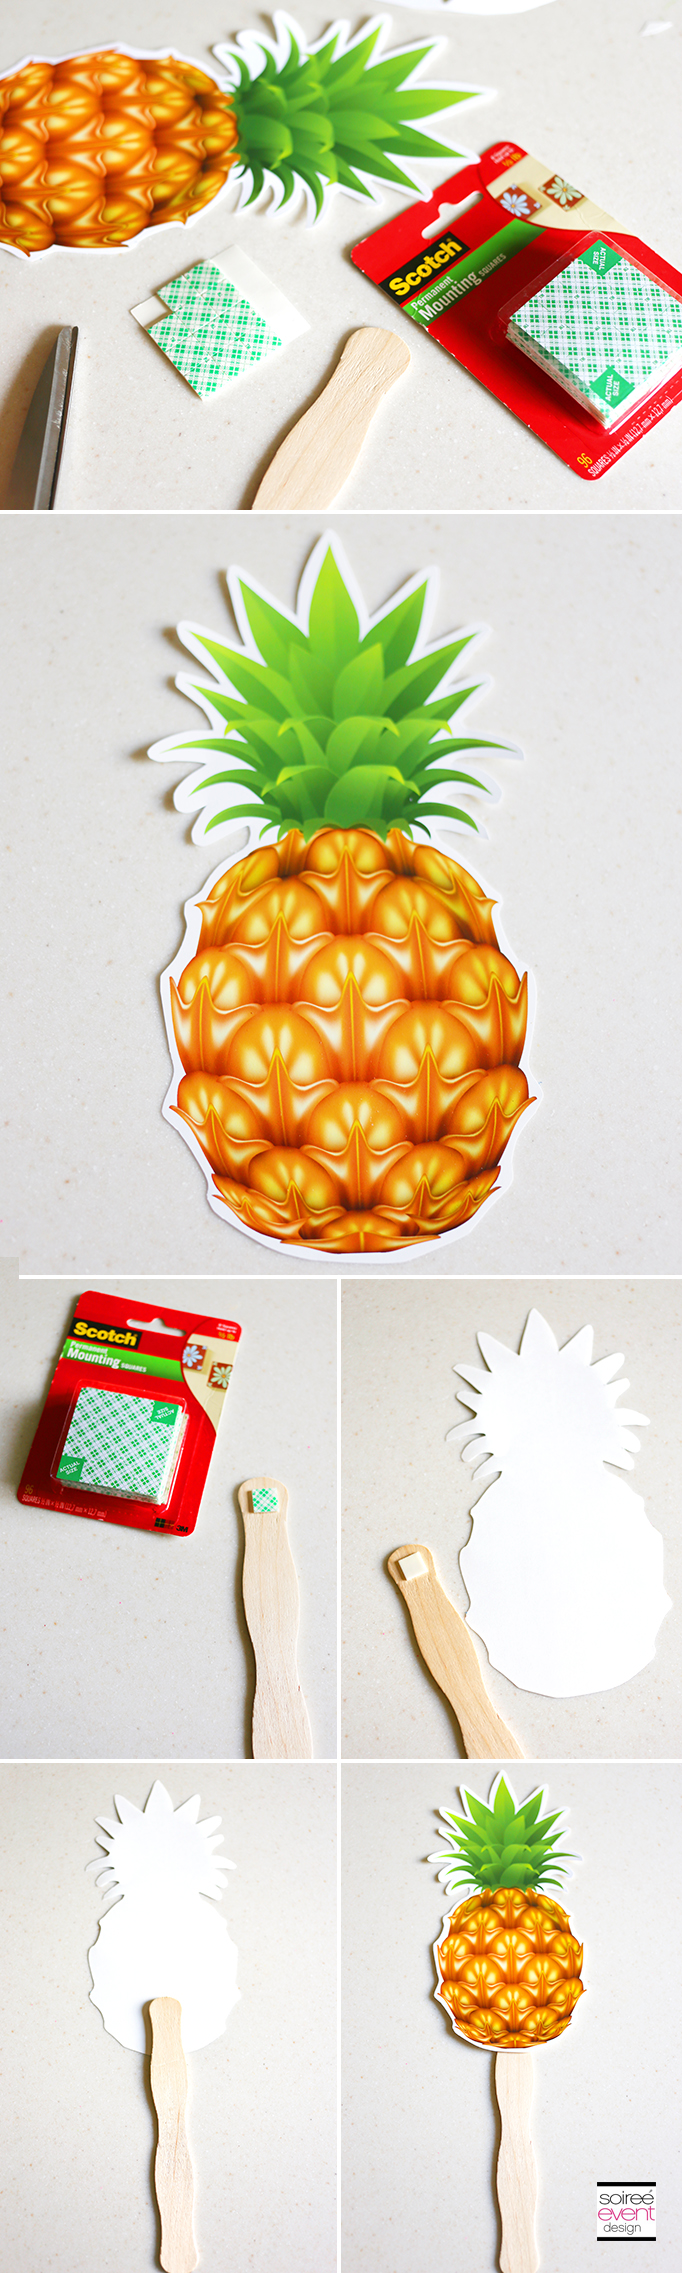 How to Make Custom Photo Booth Props